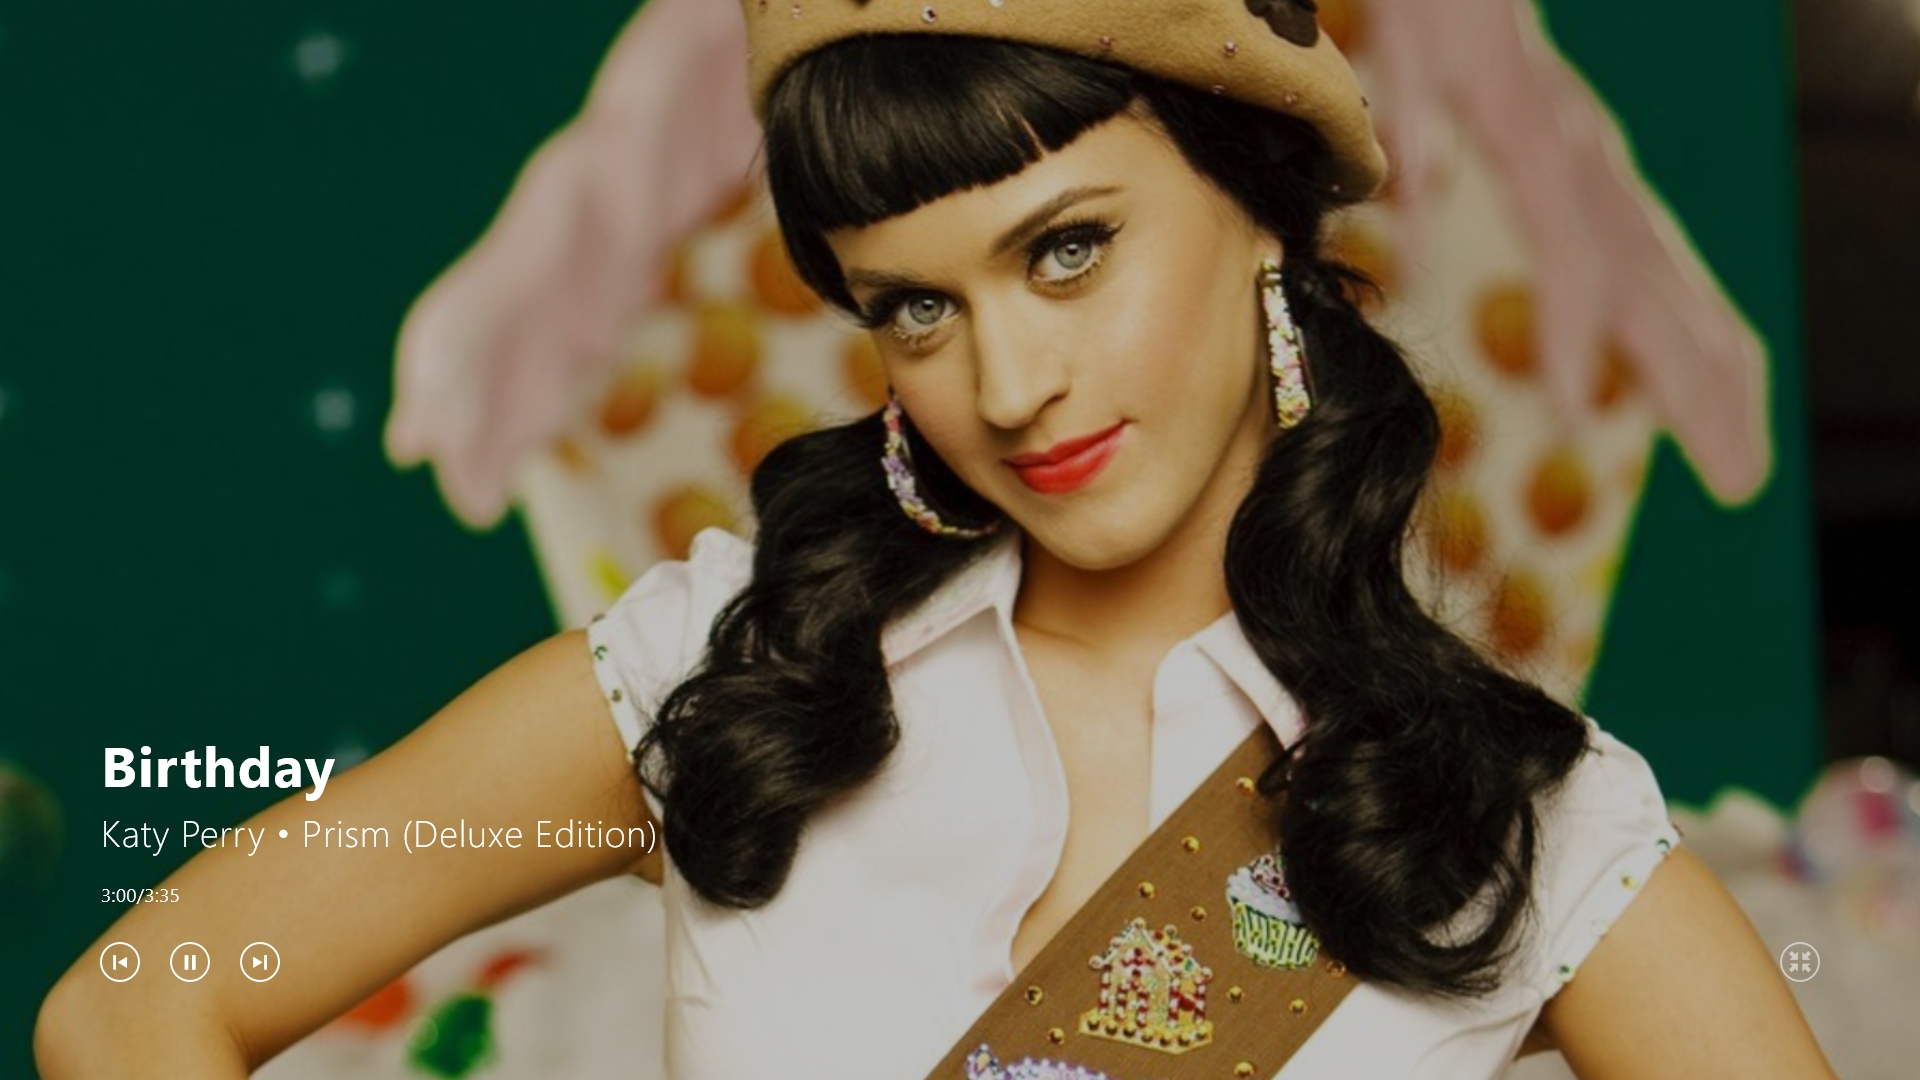 Katy perry 1080p wallpapers